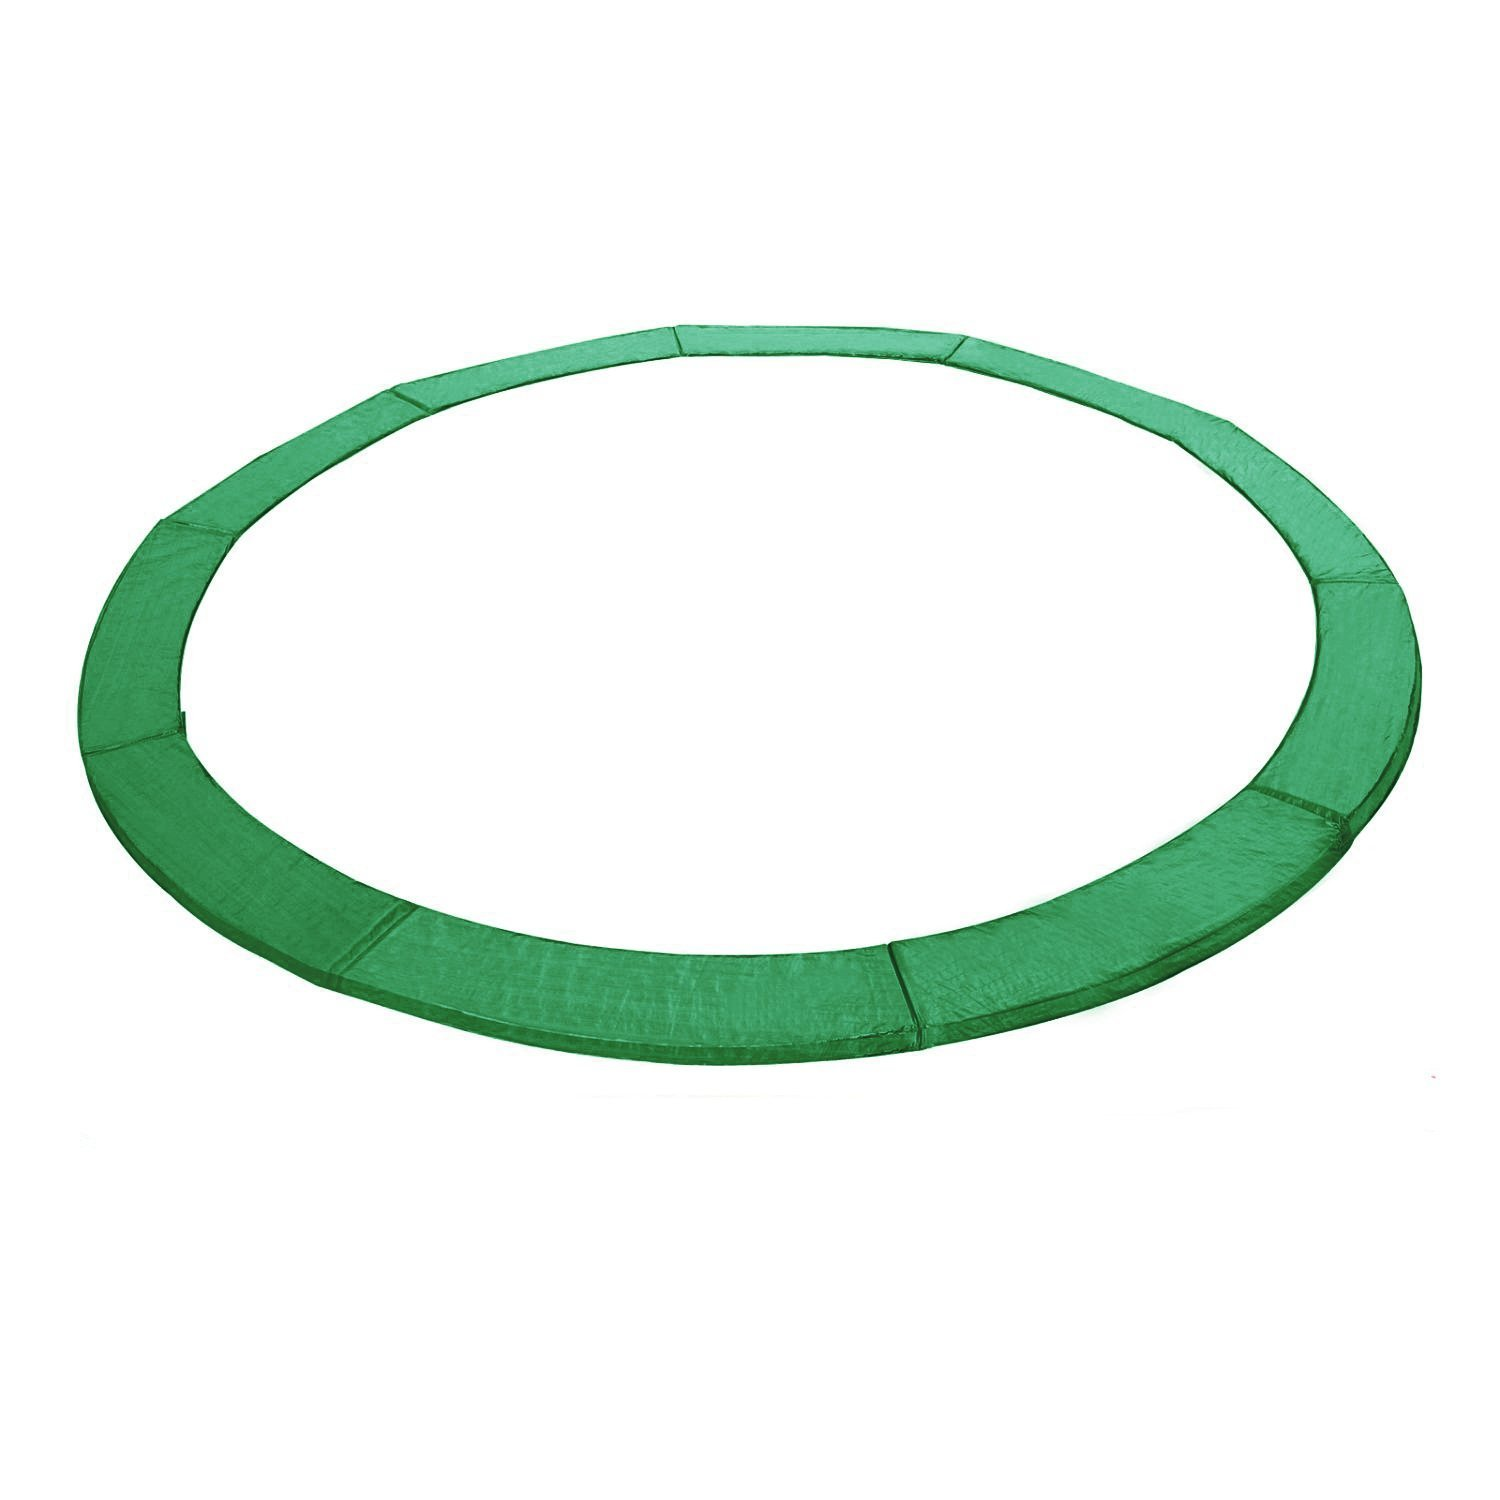 Exacme Trampoline Replacement Safety Pad Frame Spring Round Cover, Green, 16', Green, 16'